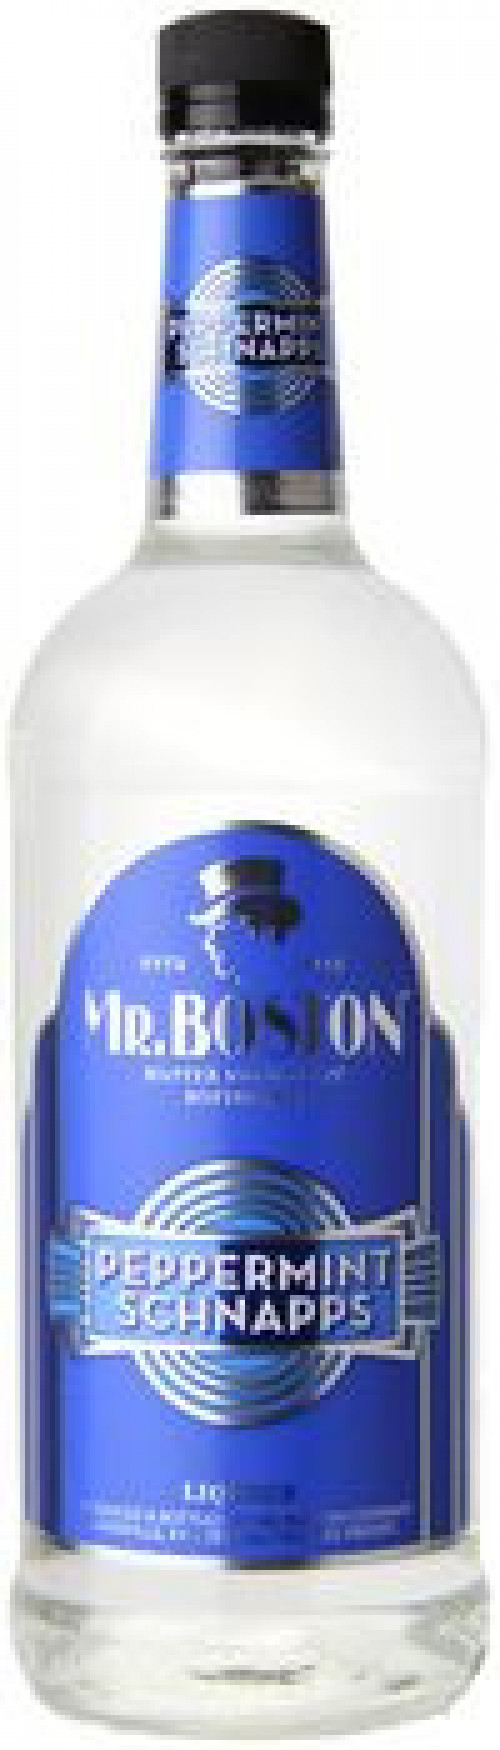 Mr Boston Peppermint Schnapps 1L